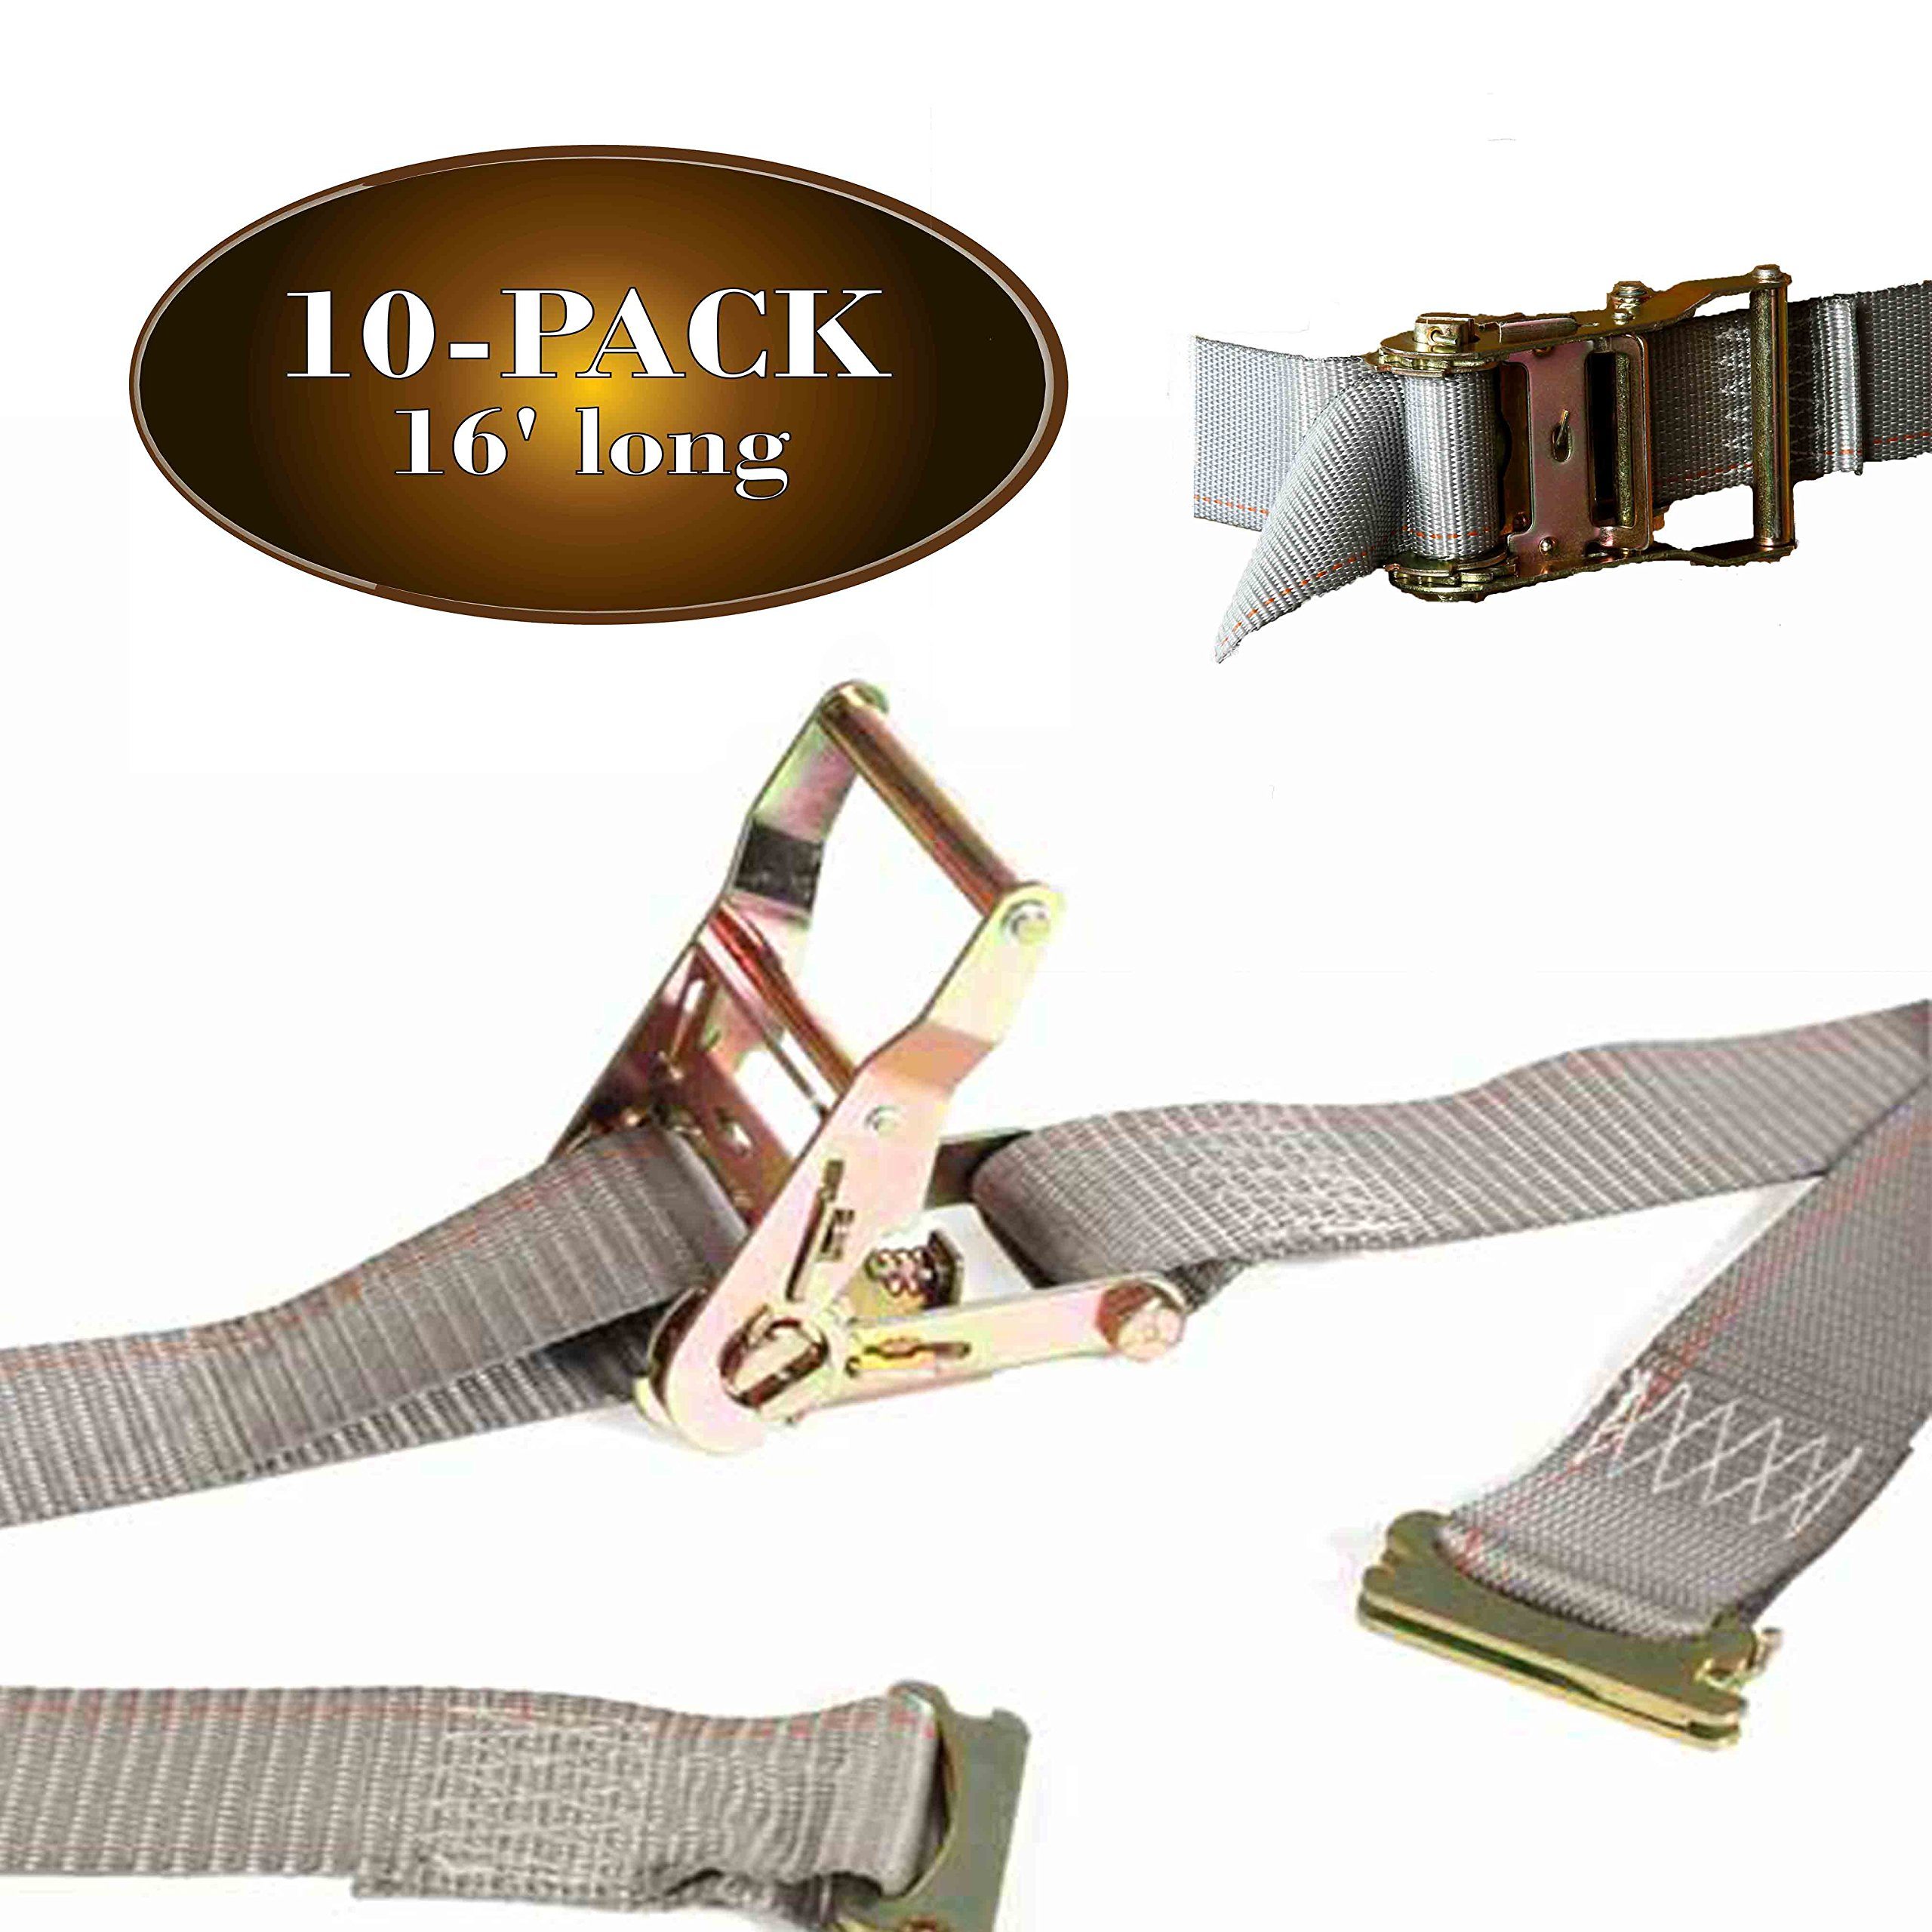 10 E Track Ratchet Tie-Down Cargo Straps, 2'' x 16' Durable Ratcheting Strap Cargo TieDowns, Heavy Duty Grey Polyester Tie-Downs, ETrack Spring Fittings by DC Cargo Mall